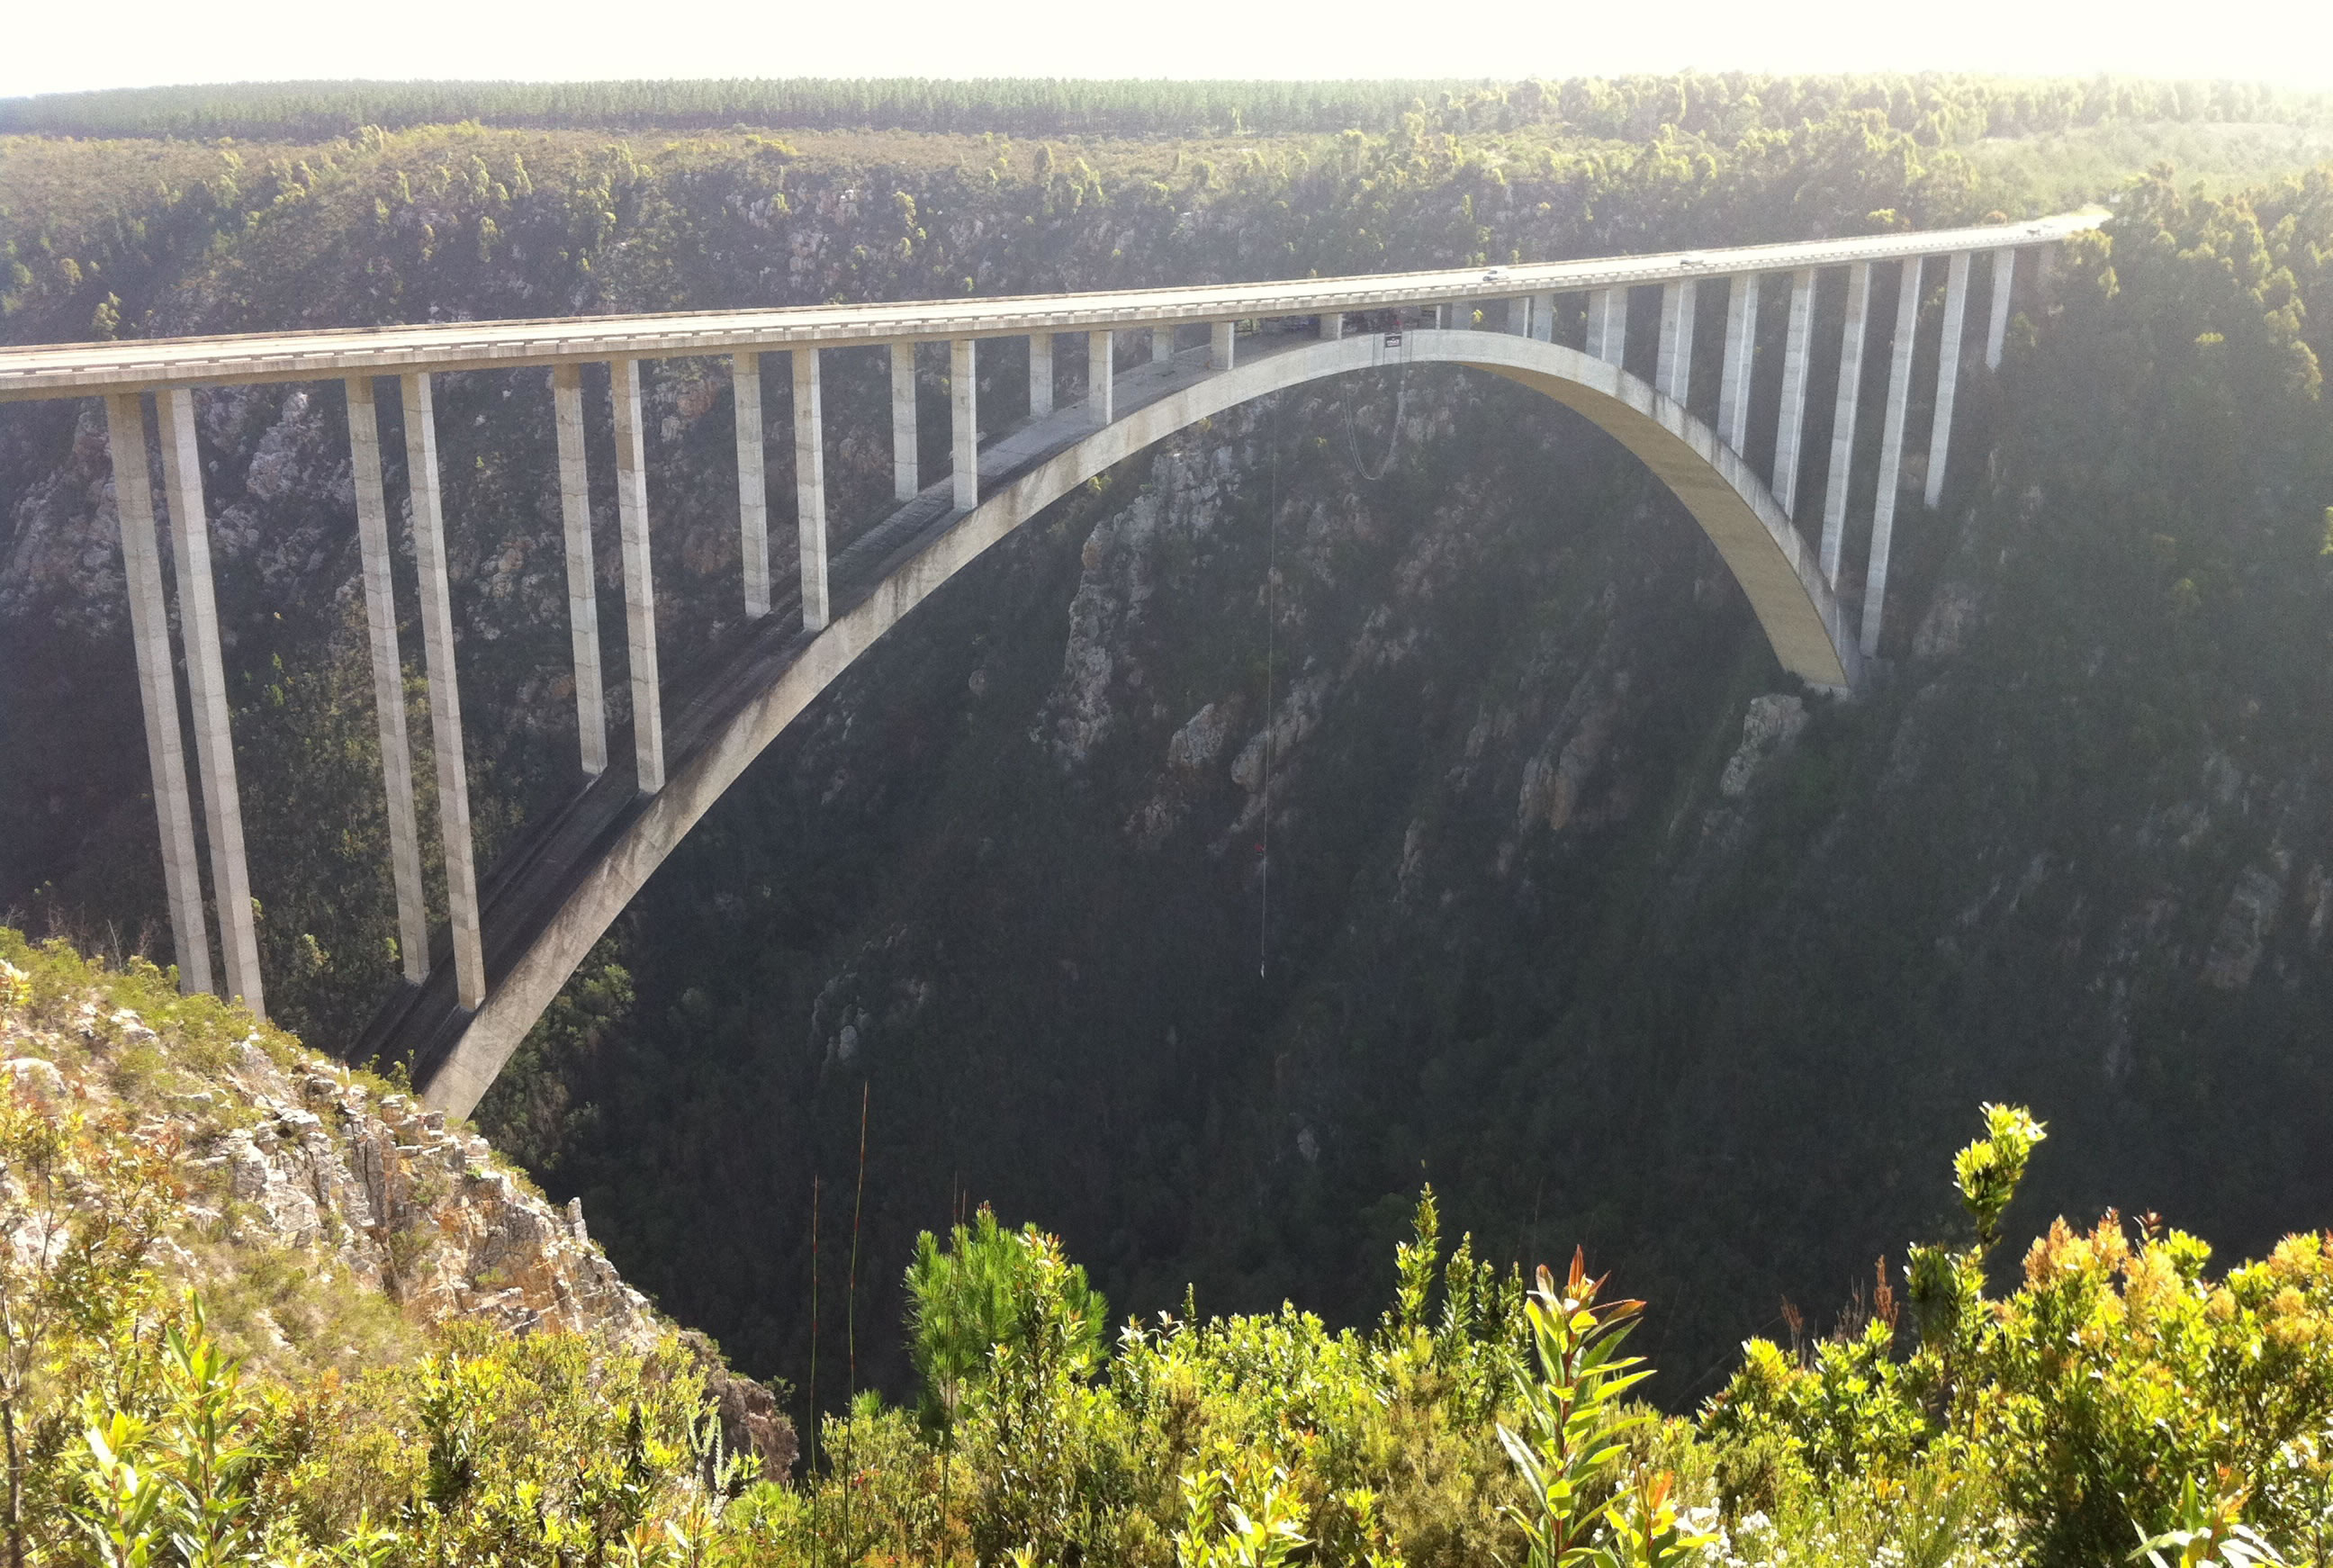 Bloukrans Bridge, South Africa GoBeyongSG